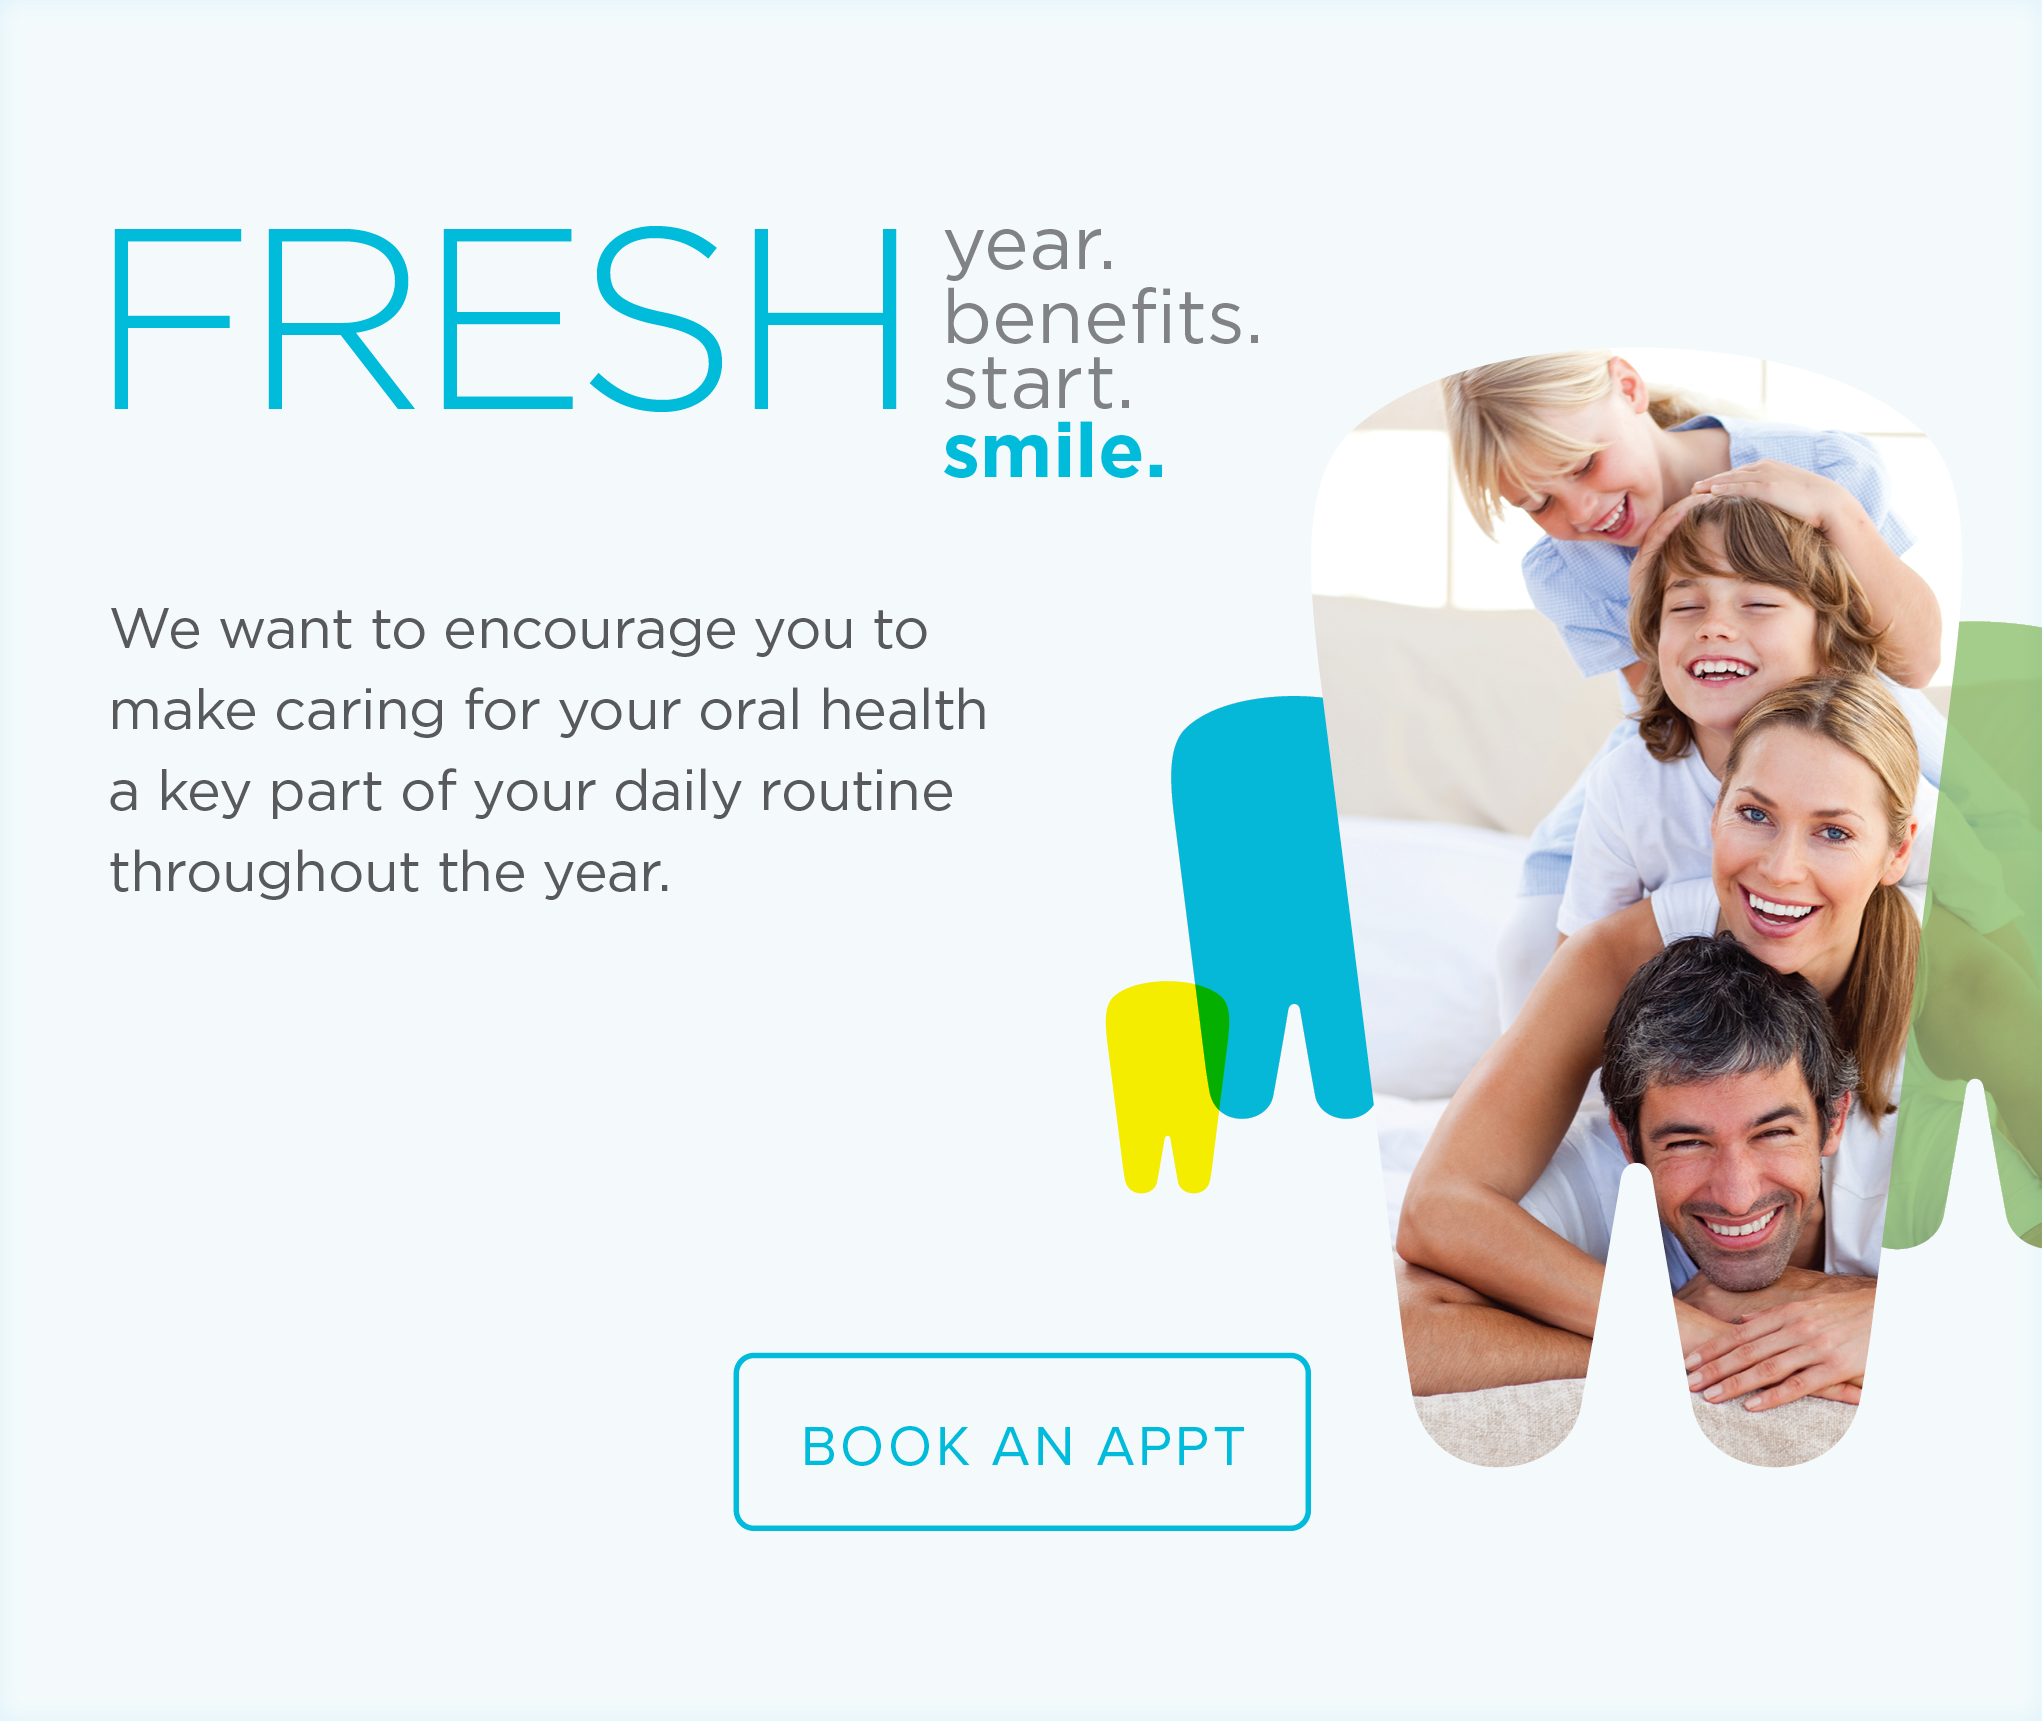 Highland Dental Group and Orthodontics - Make the Most of Your Benefits